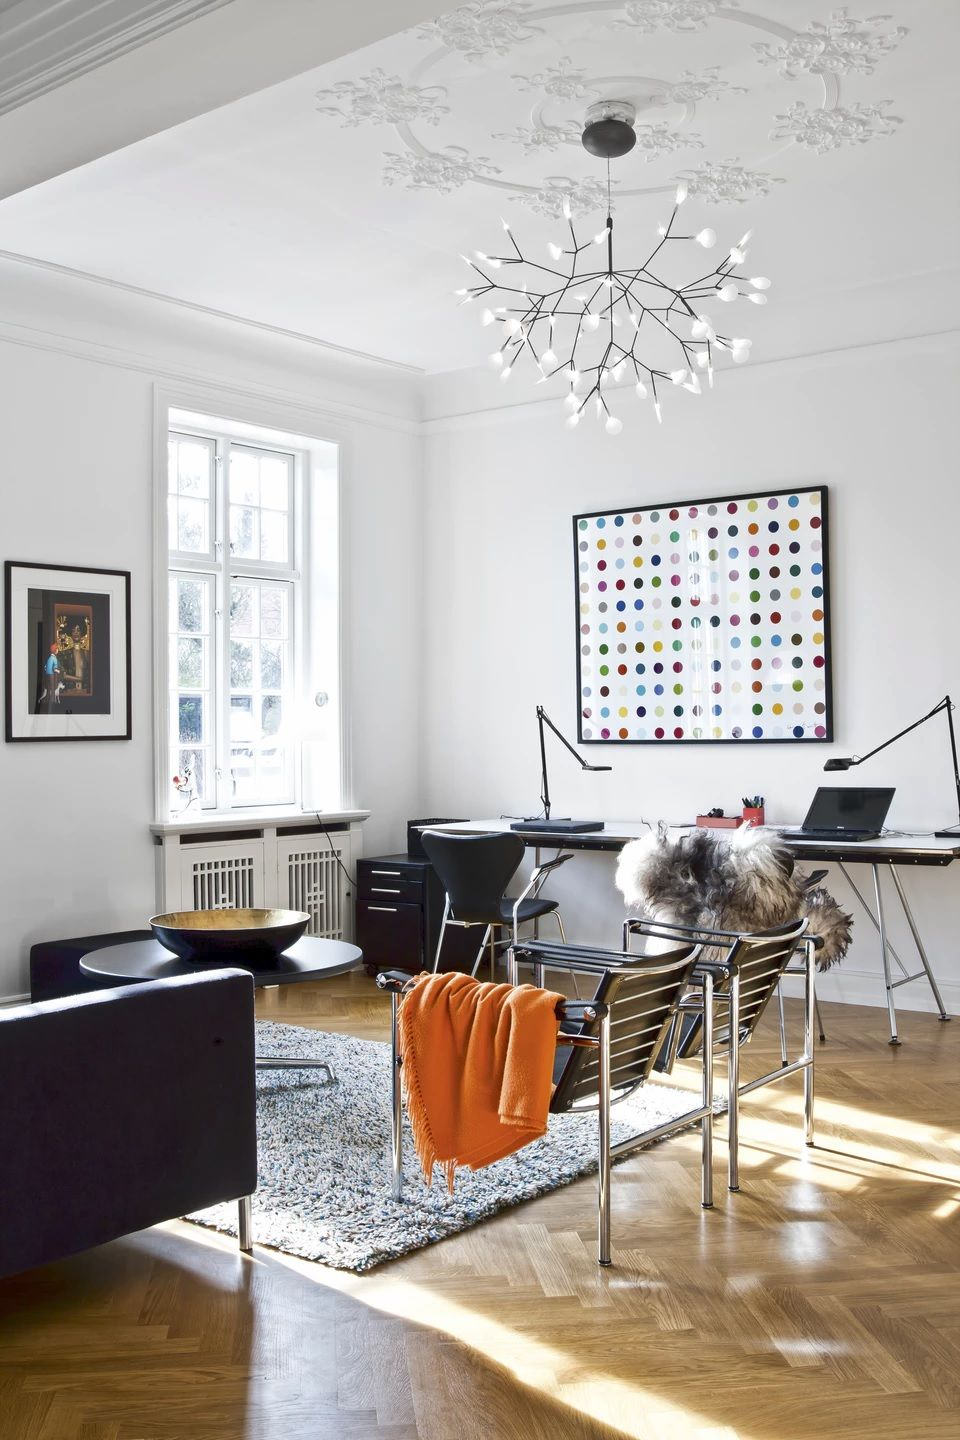 HERACLEUM II Pendant From Moooi, A Pair Of LeCorbusier LC1 Chairs By  Cassina, A